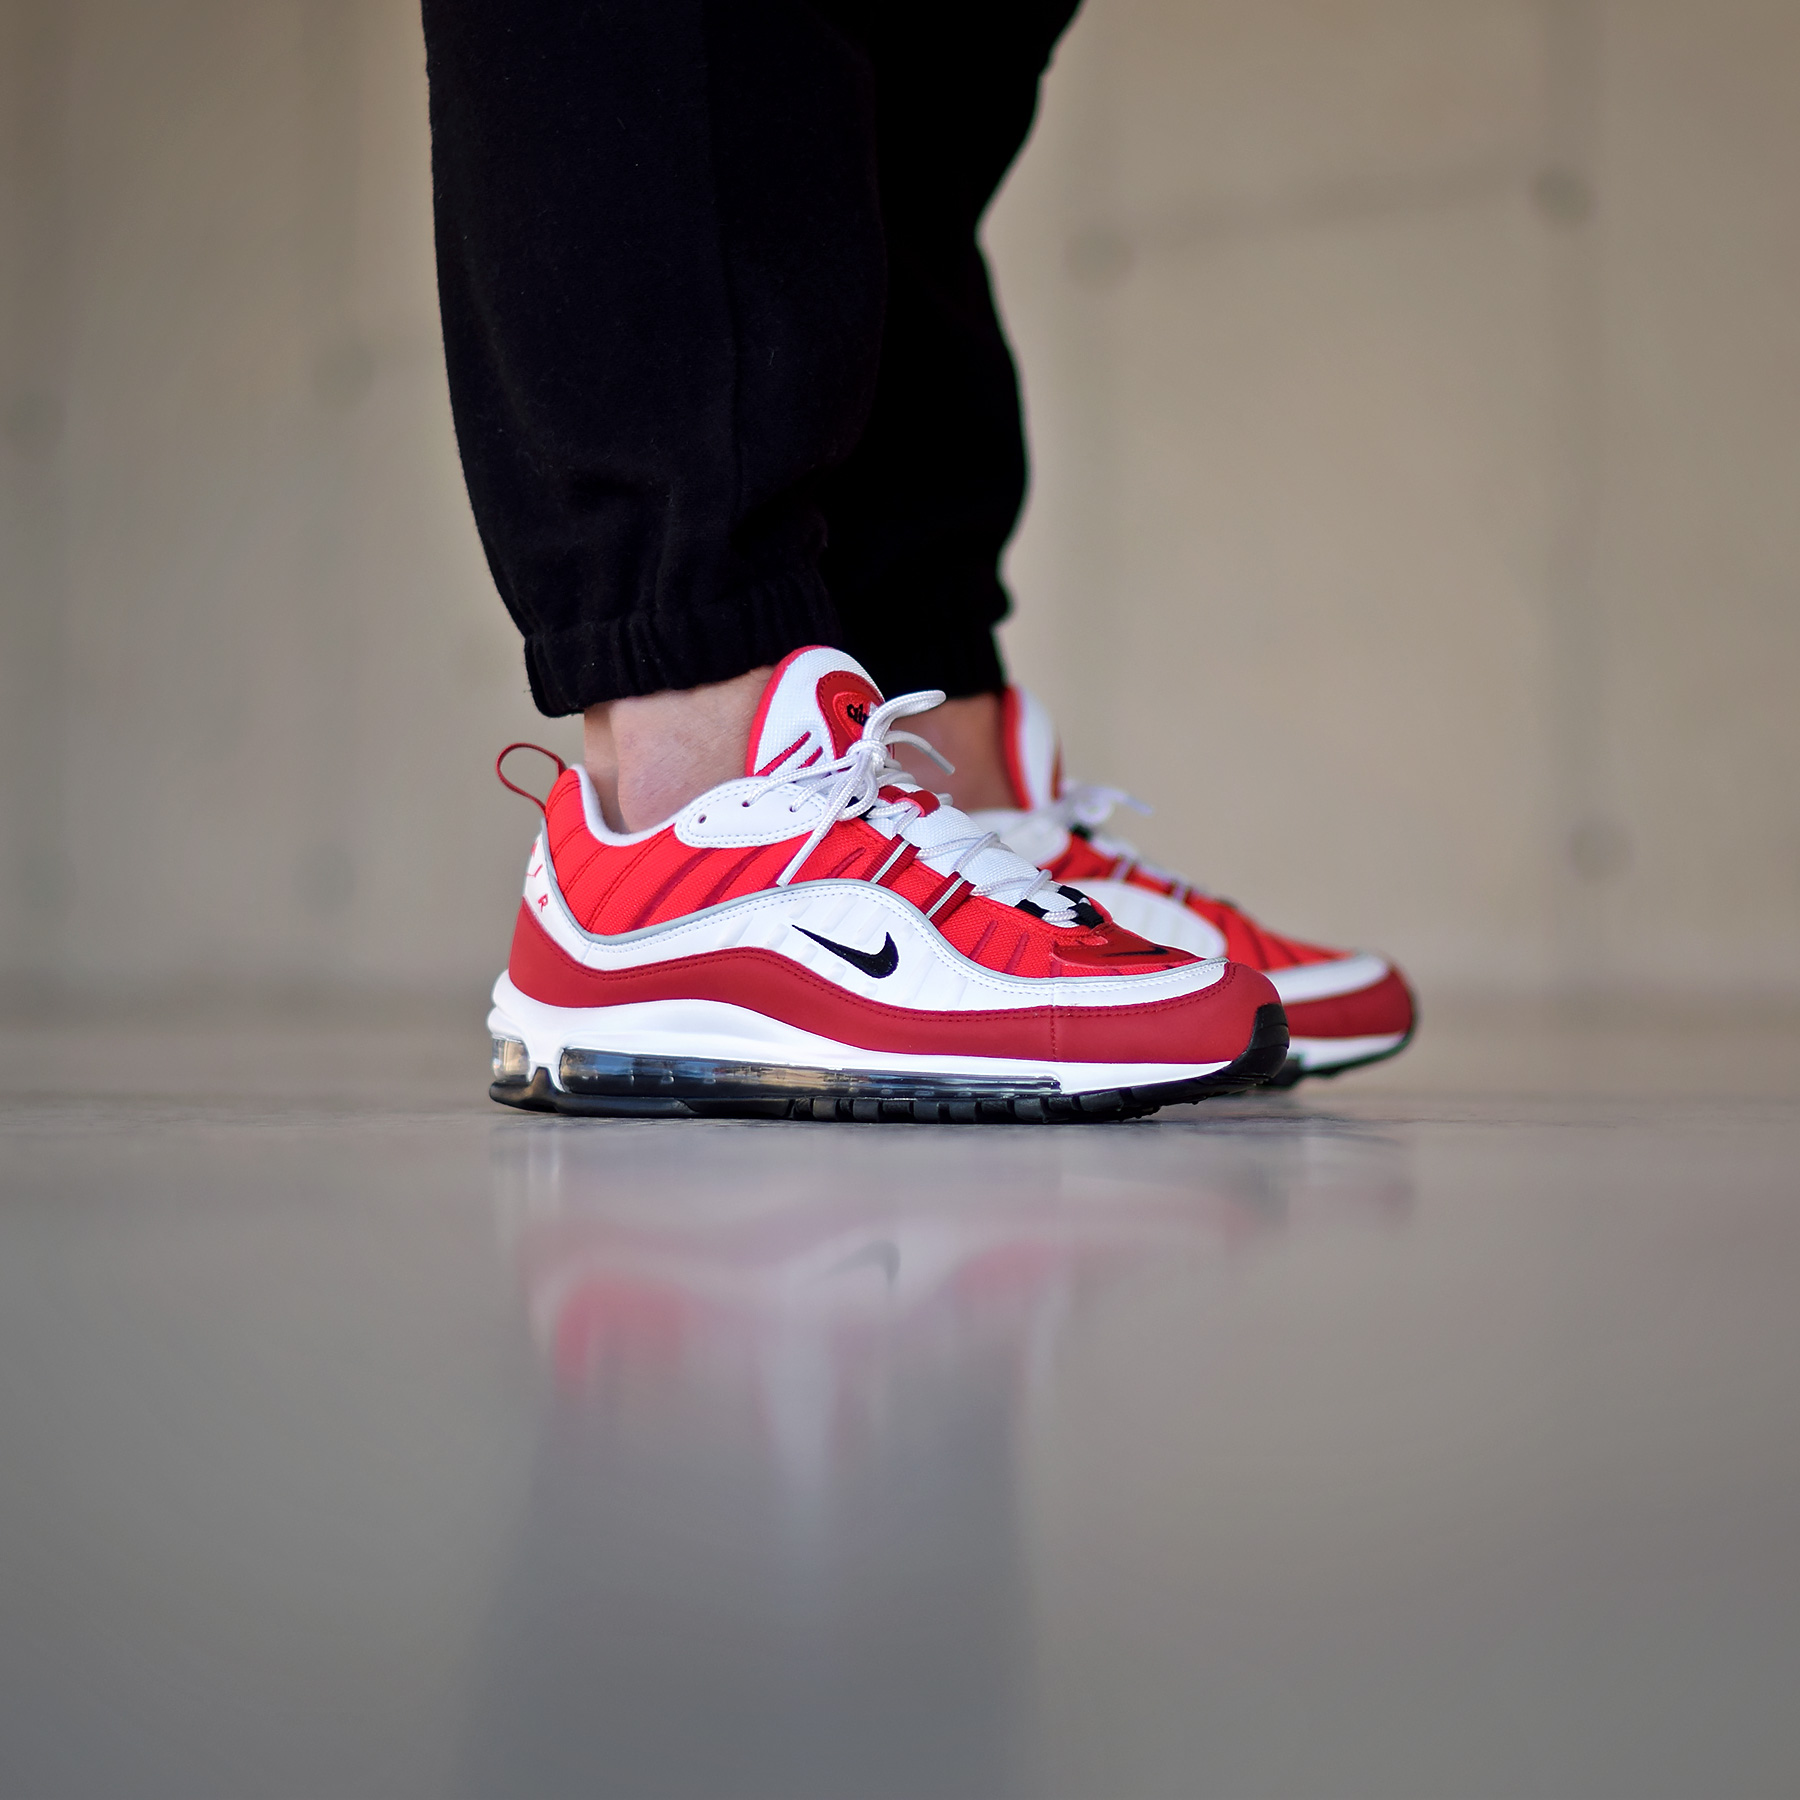 Guide achat] La Nike Air Max 98 Rouge 'Gym Red' (Saint Valentin)